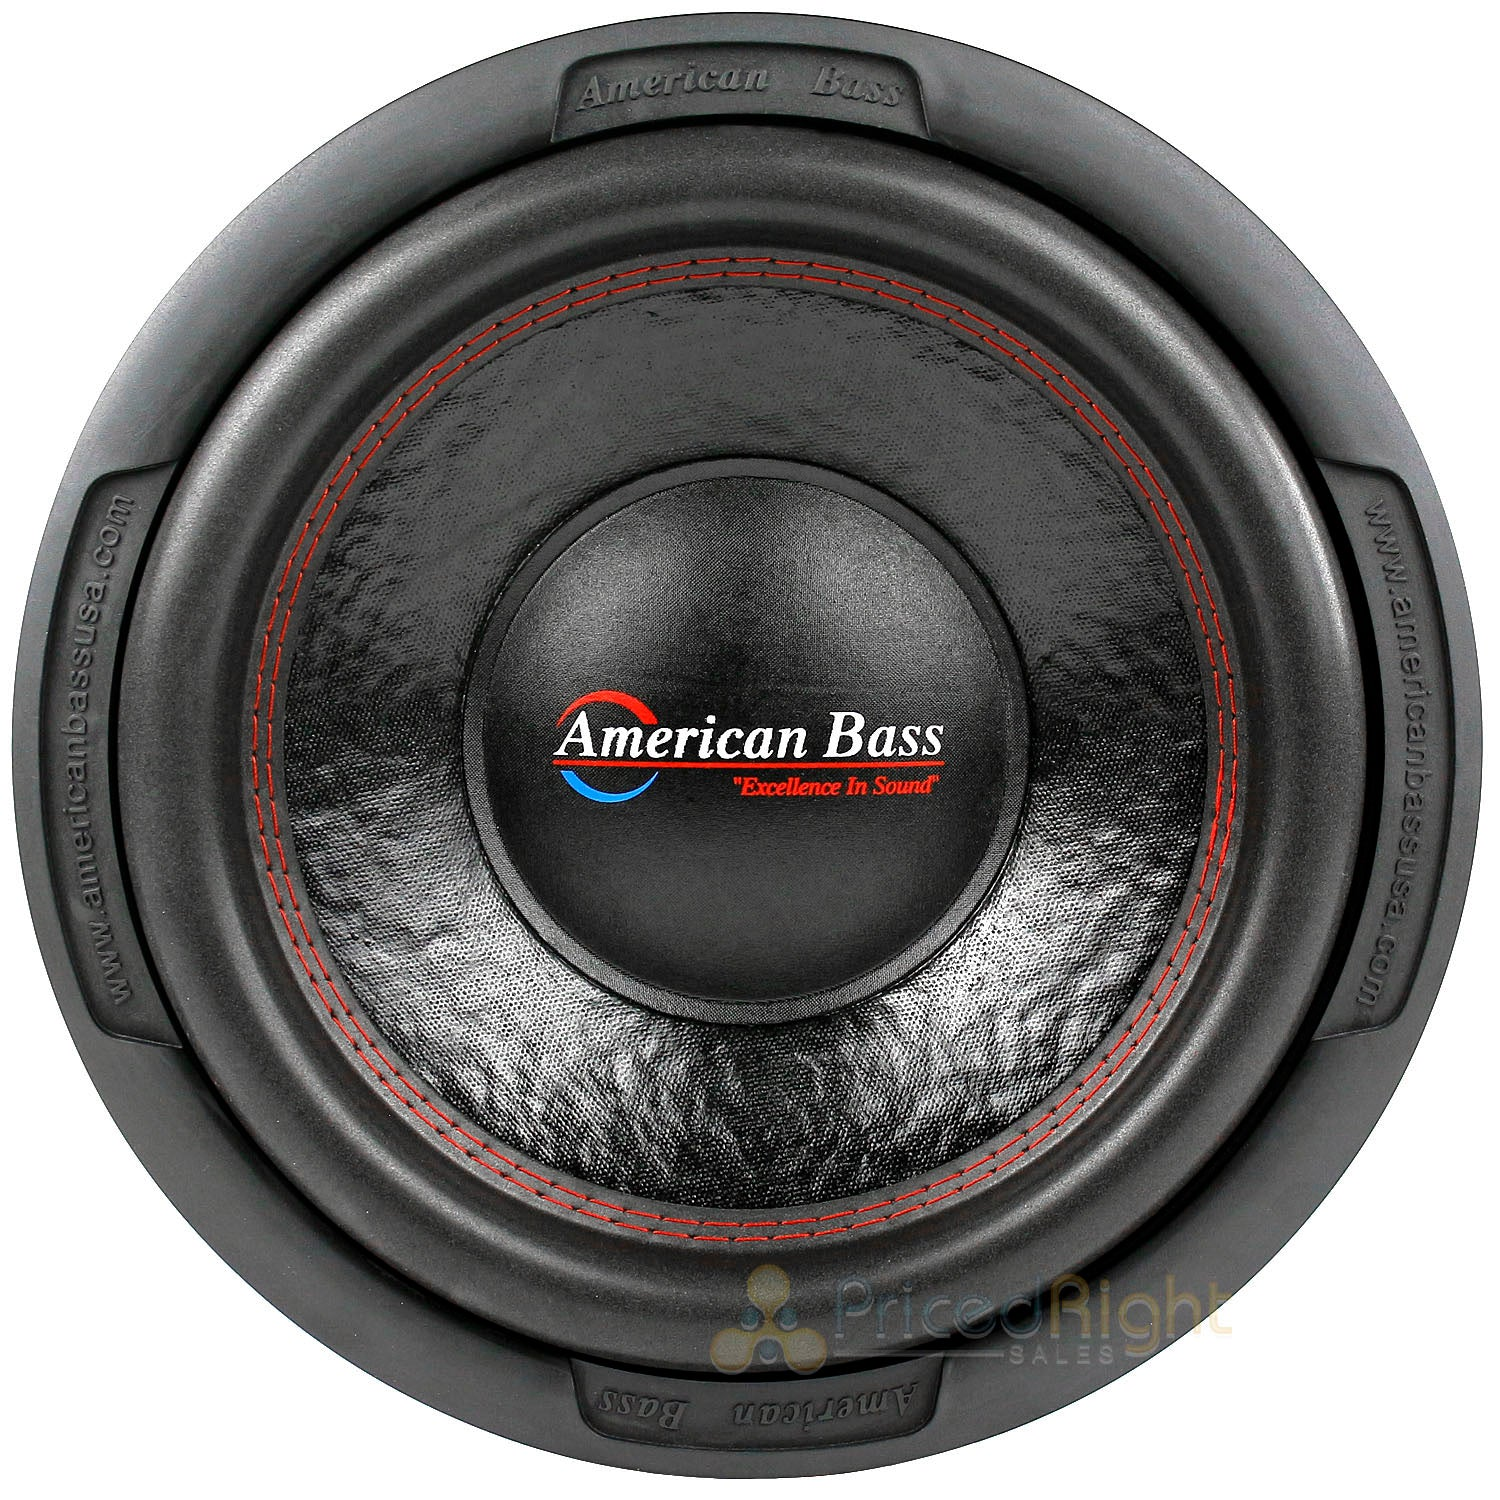 "2 Pack American Bass 12"" Subwoofers Dual 2 Ohm 1000 Watts Max Sub XD-1222"